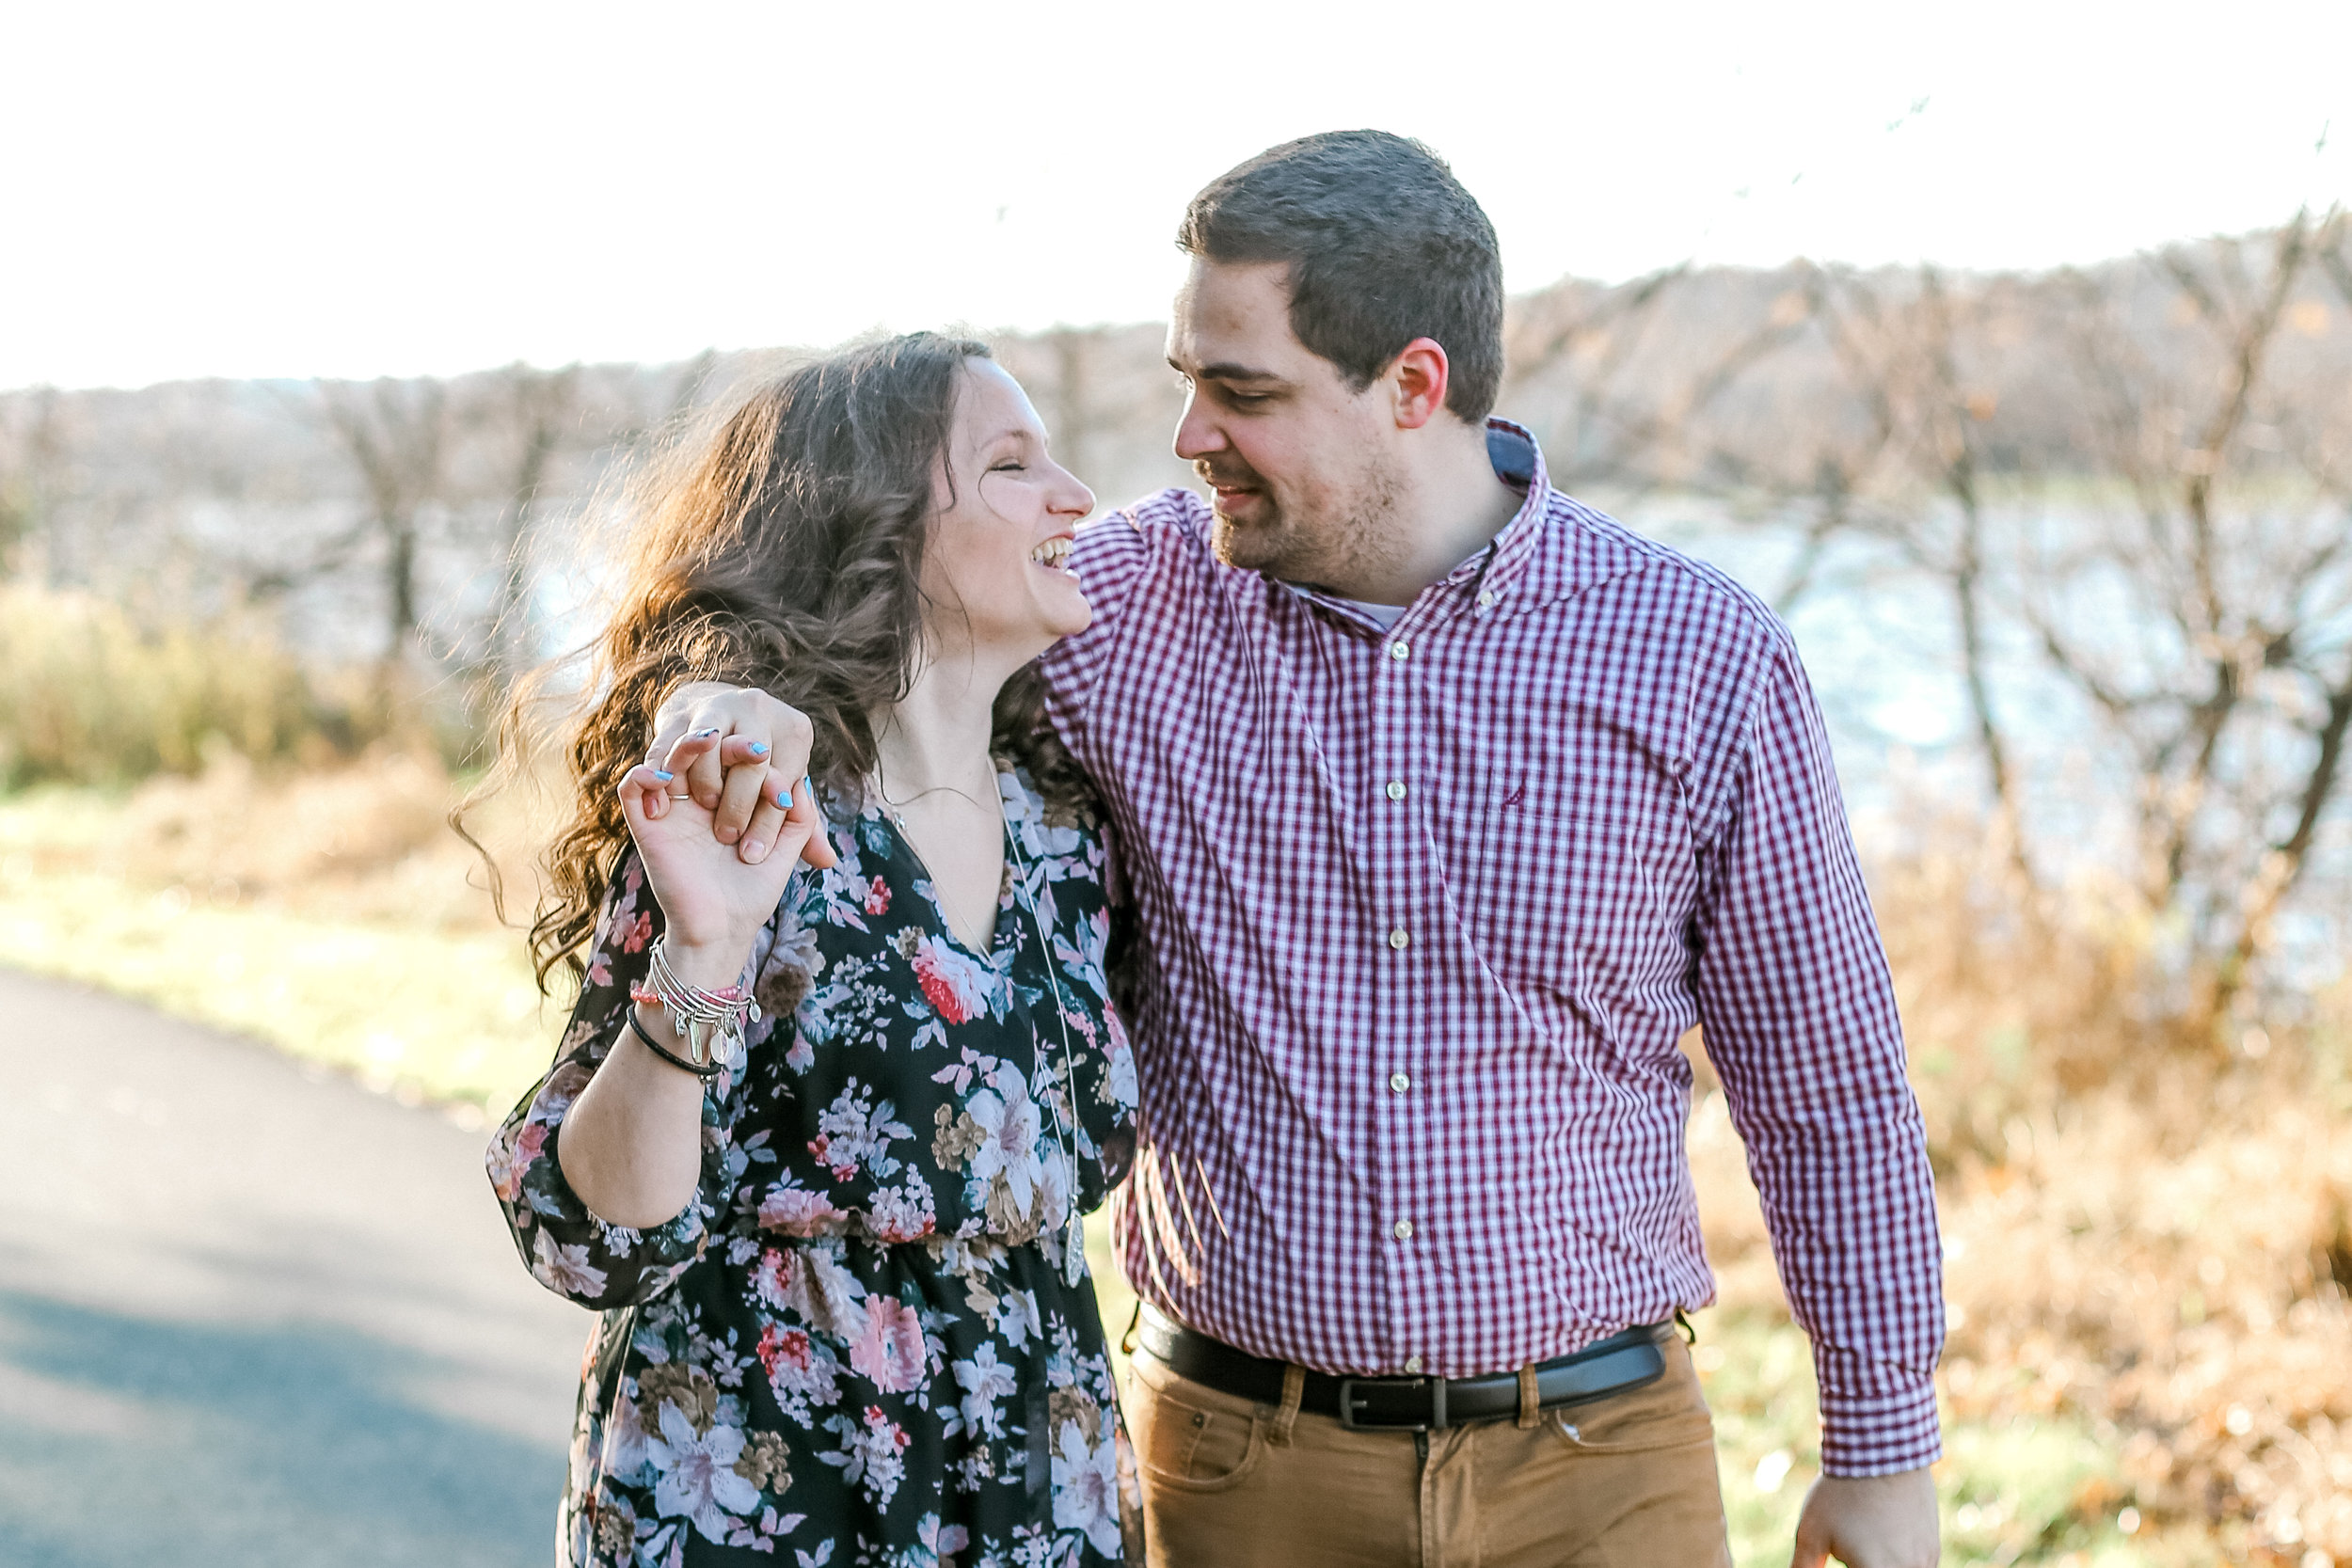 Bucks county Peace Valley Park Doylestown Lehigh Valley fall windy engagement session wedding and lifestyle photographer Lytle Photo Co (14 of 109).jpg